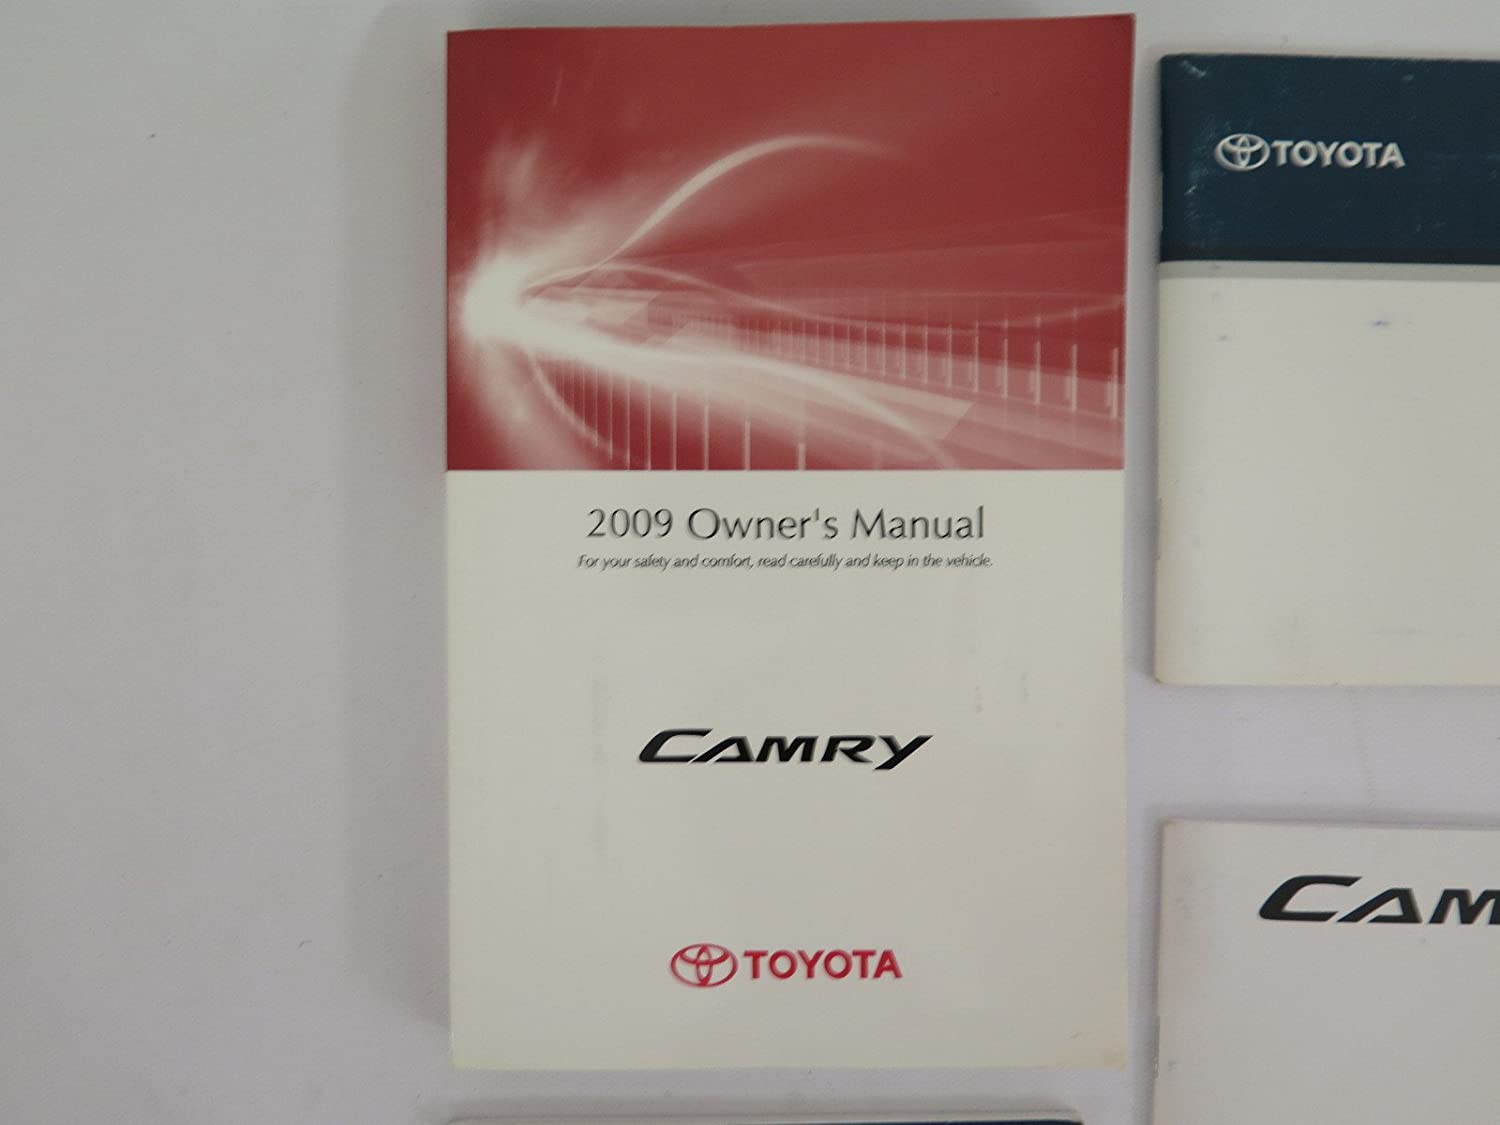 2009 toyota camry hybrid owners manual how to and user guide rh taxibermuda co 1991 toyota camry owners manual 1995 Toyota Camry